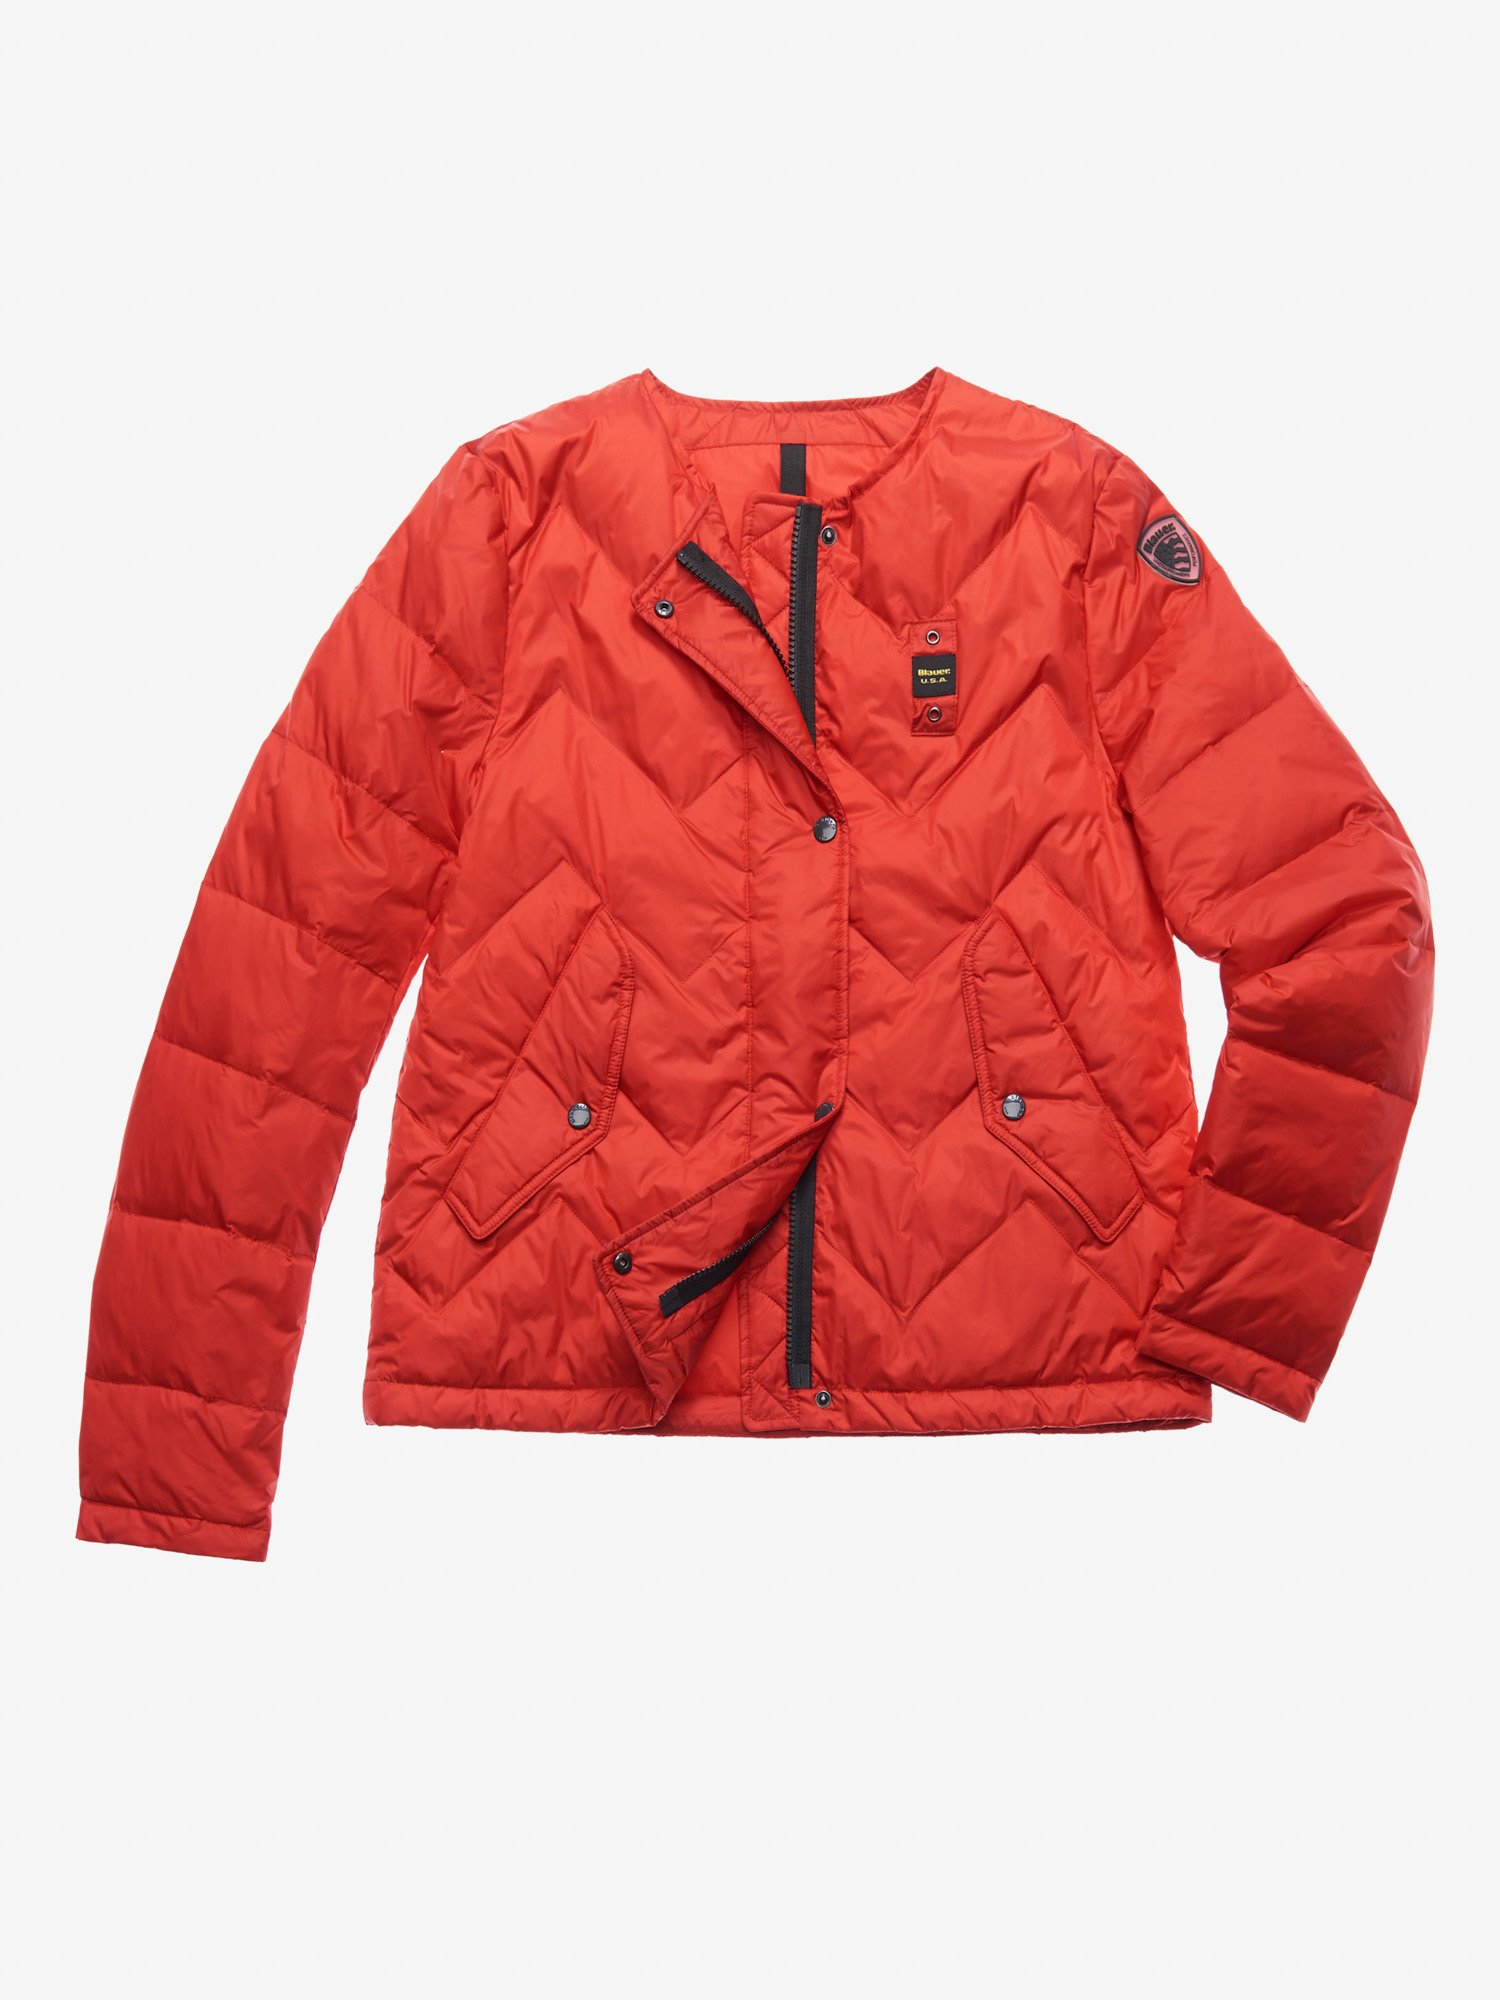 BROOKS ZIG ZAG DOWN JACKET - Blauer